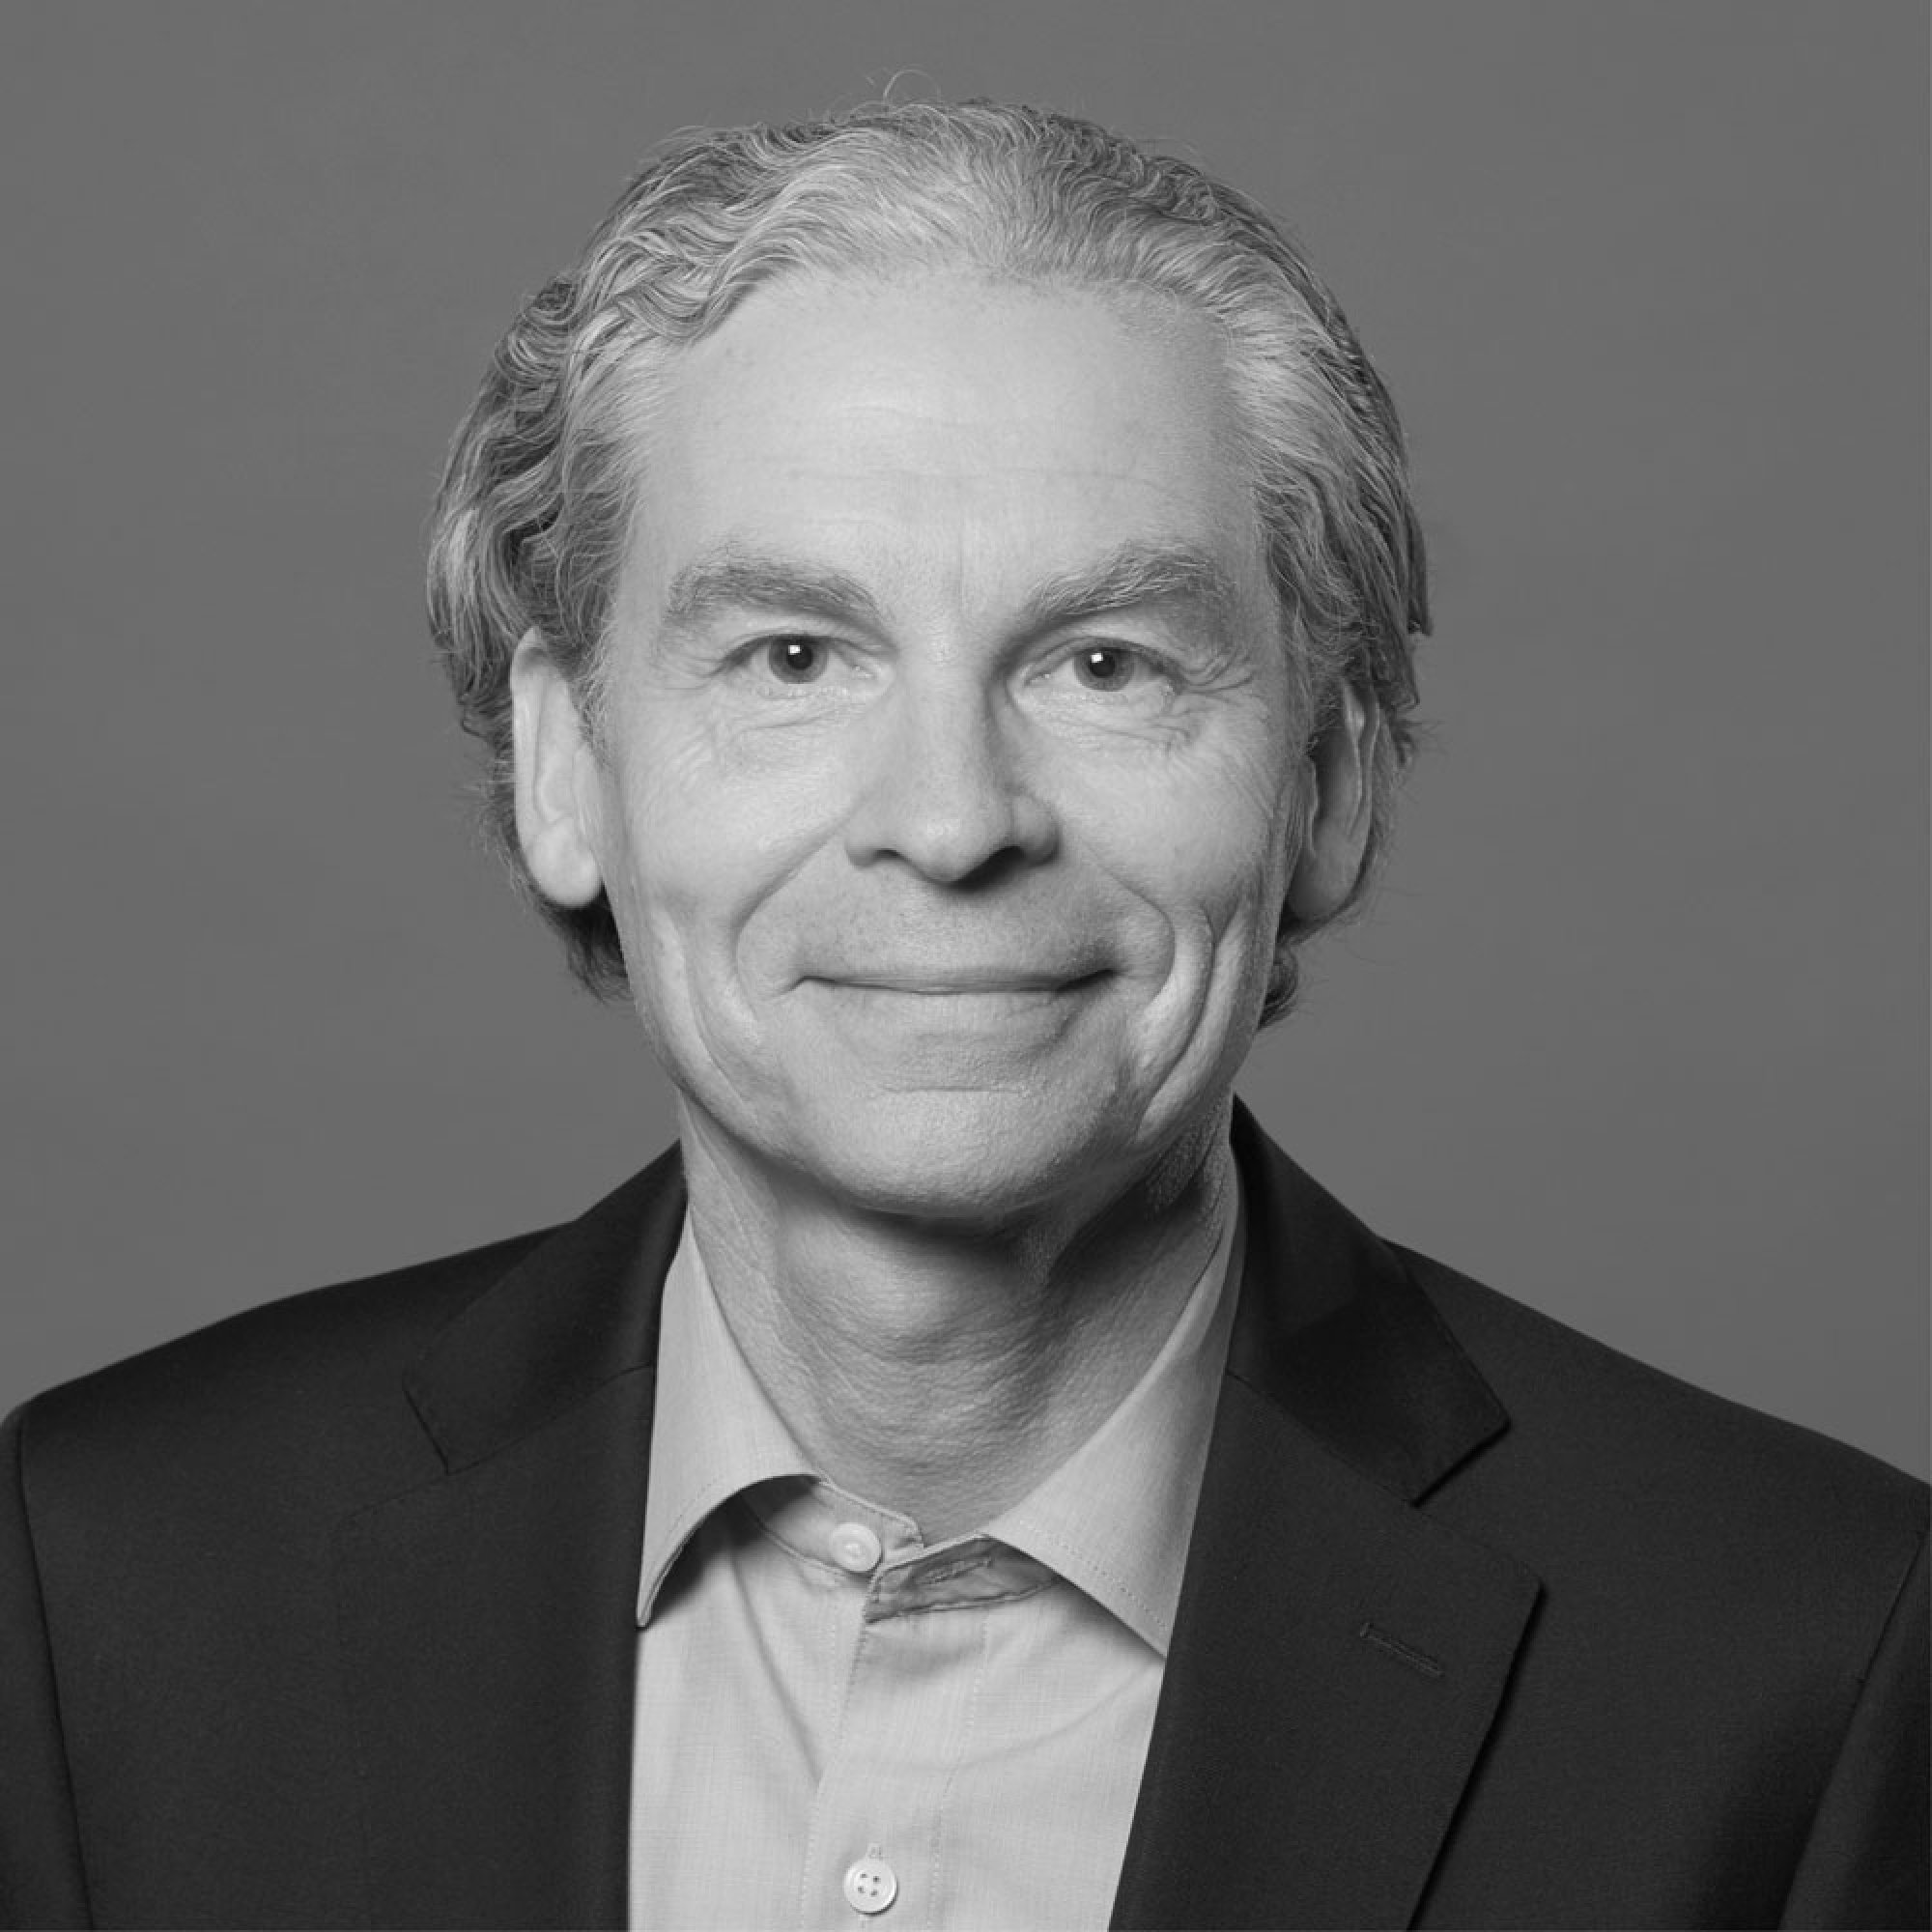 Christoph Hillenkamp BW